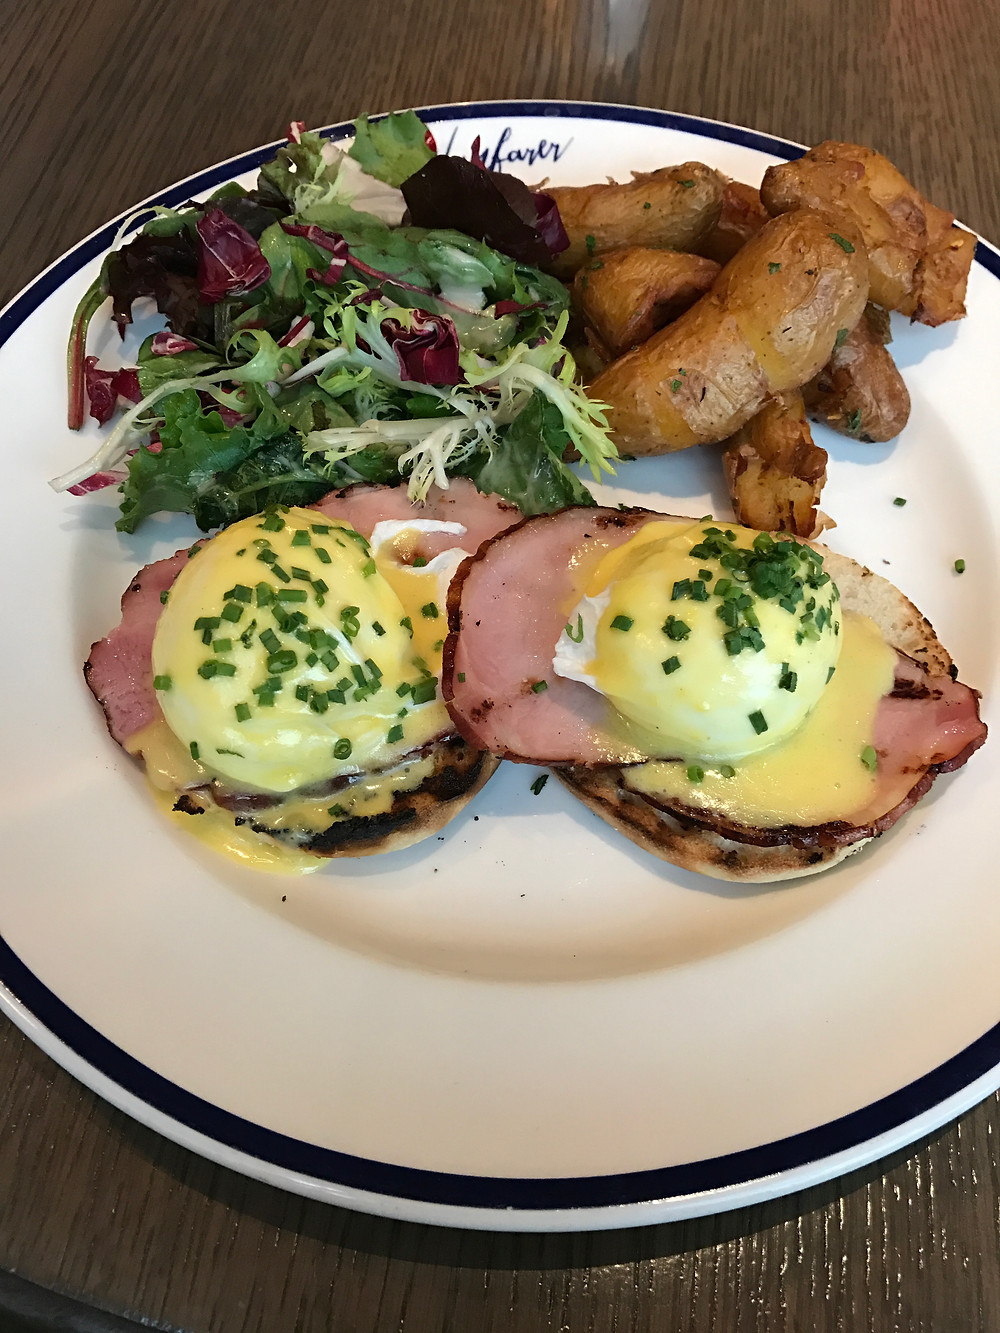 Eggs Benedict. What a beauty!